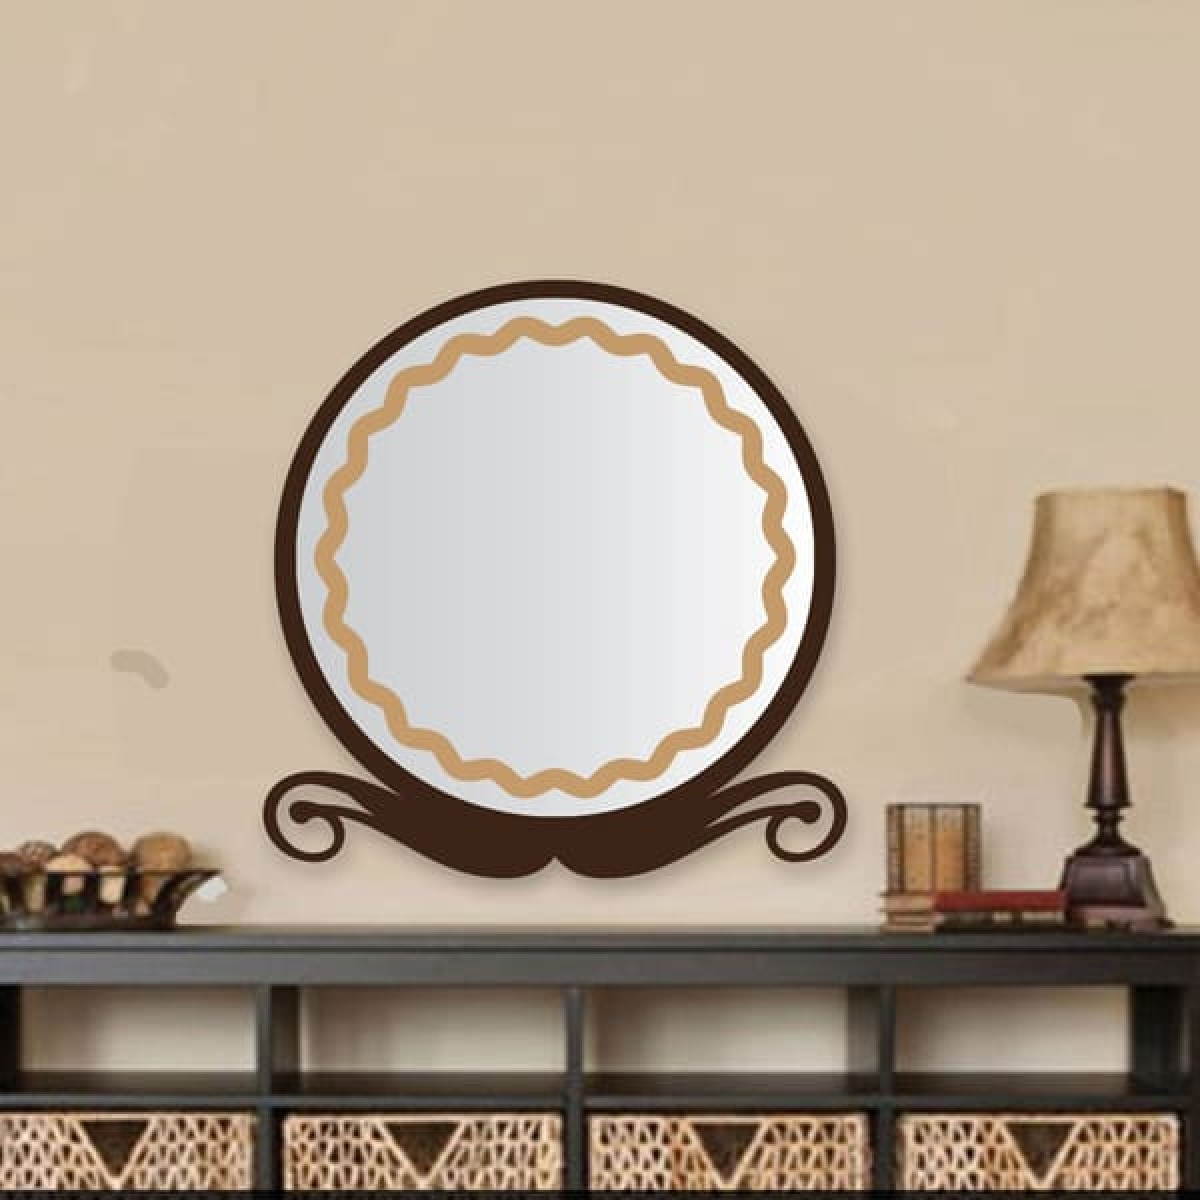 Mustache Shaped Light Brown Wall Mirror Online Delivery To Amman/jordan Intended For Widely Used Brown Wall Mirrors (View 20 of 20)